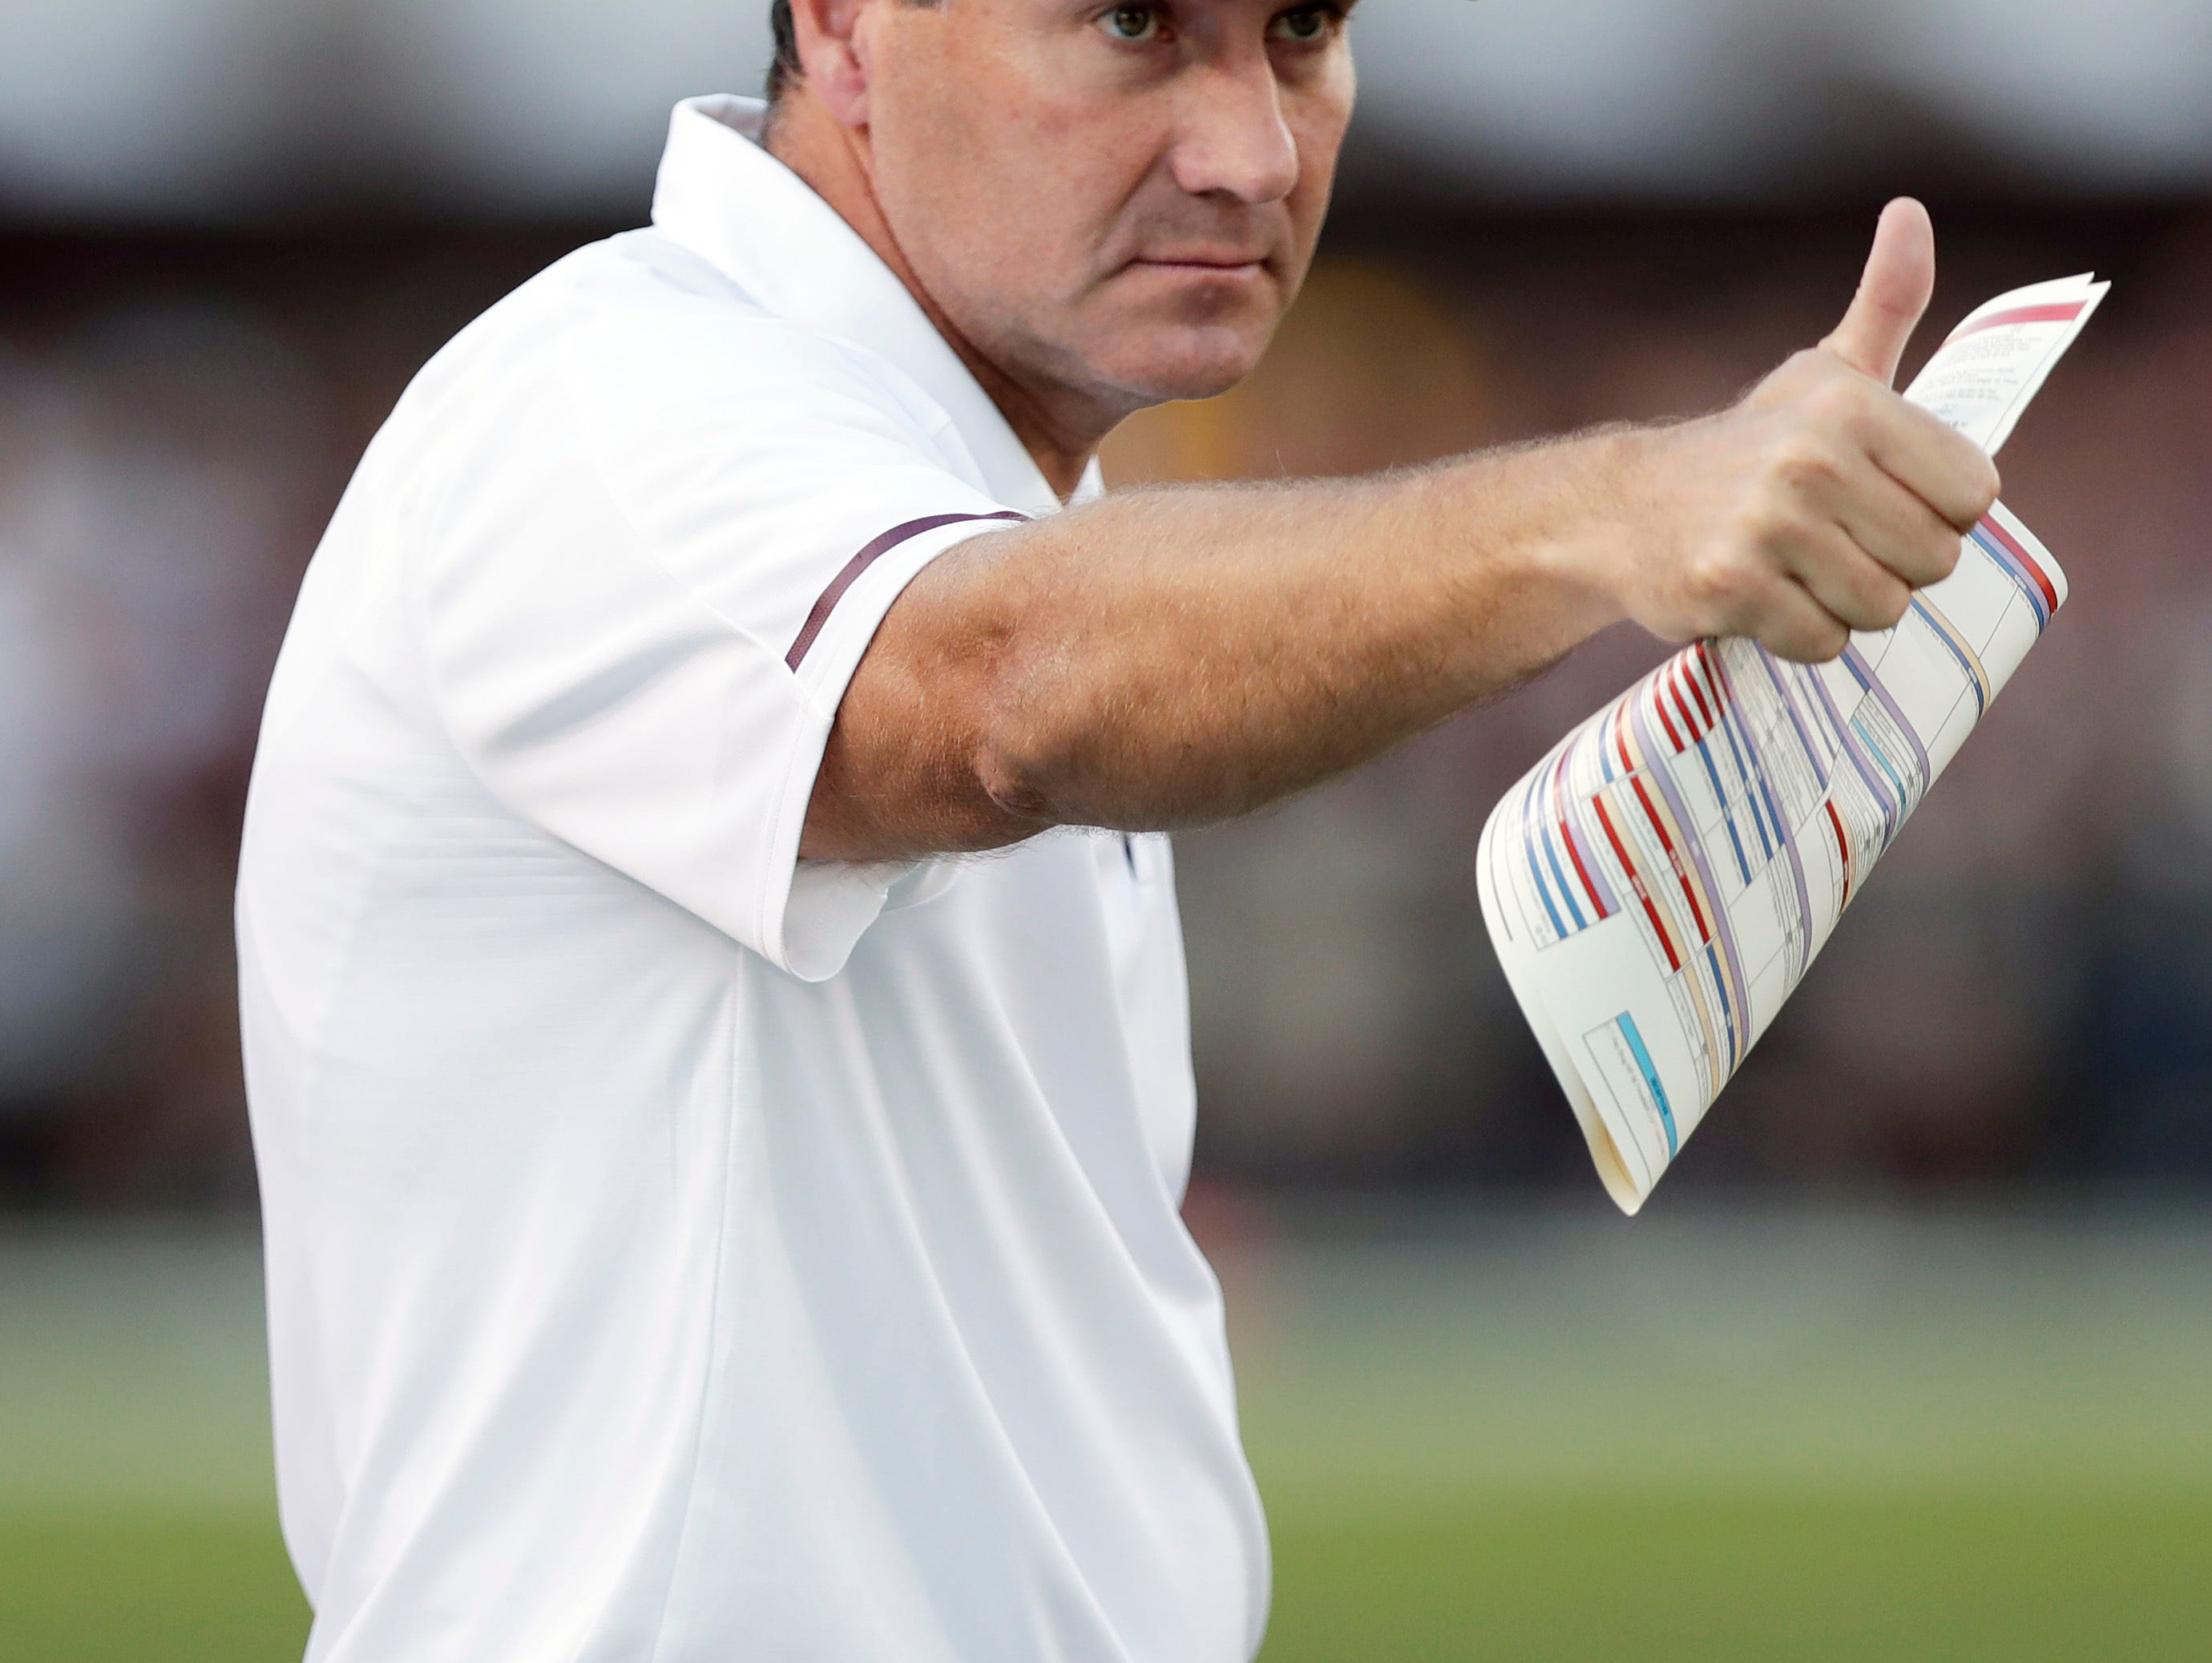 Mississippi State head coach Dan Mullen gestures toward the officials after a favorable call during the first half of an NCAA college football game against LSU in Starkville, Miss., Saturday, Sept. 16, 2017. (AP Photo/Rogelio V. Solis)